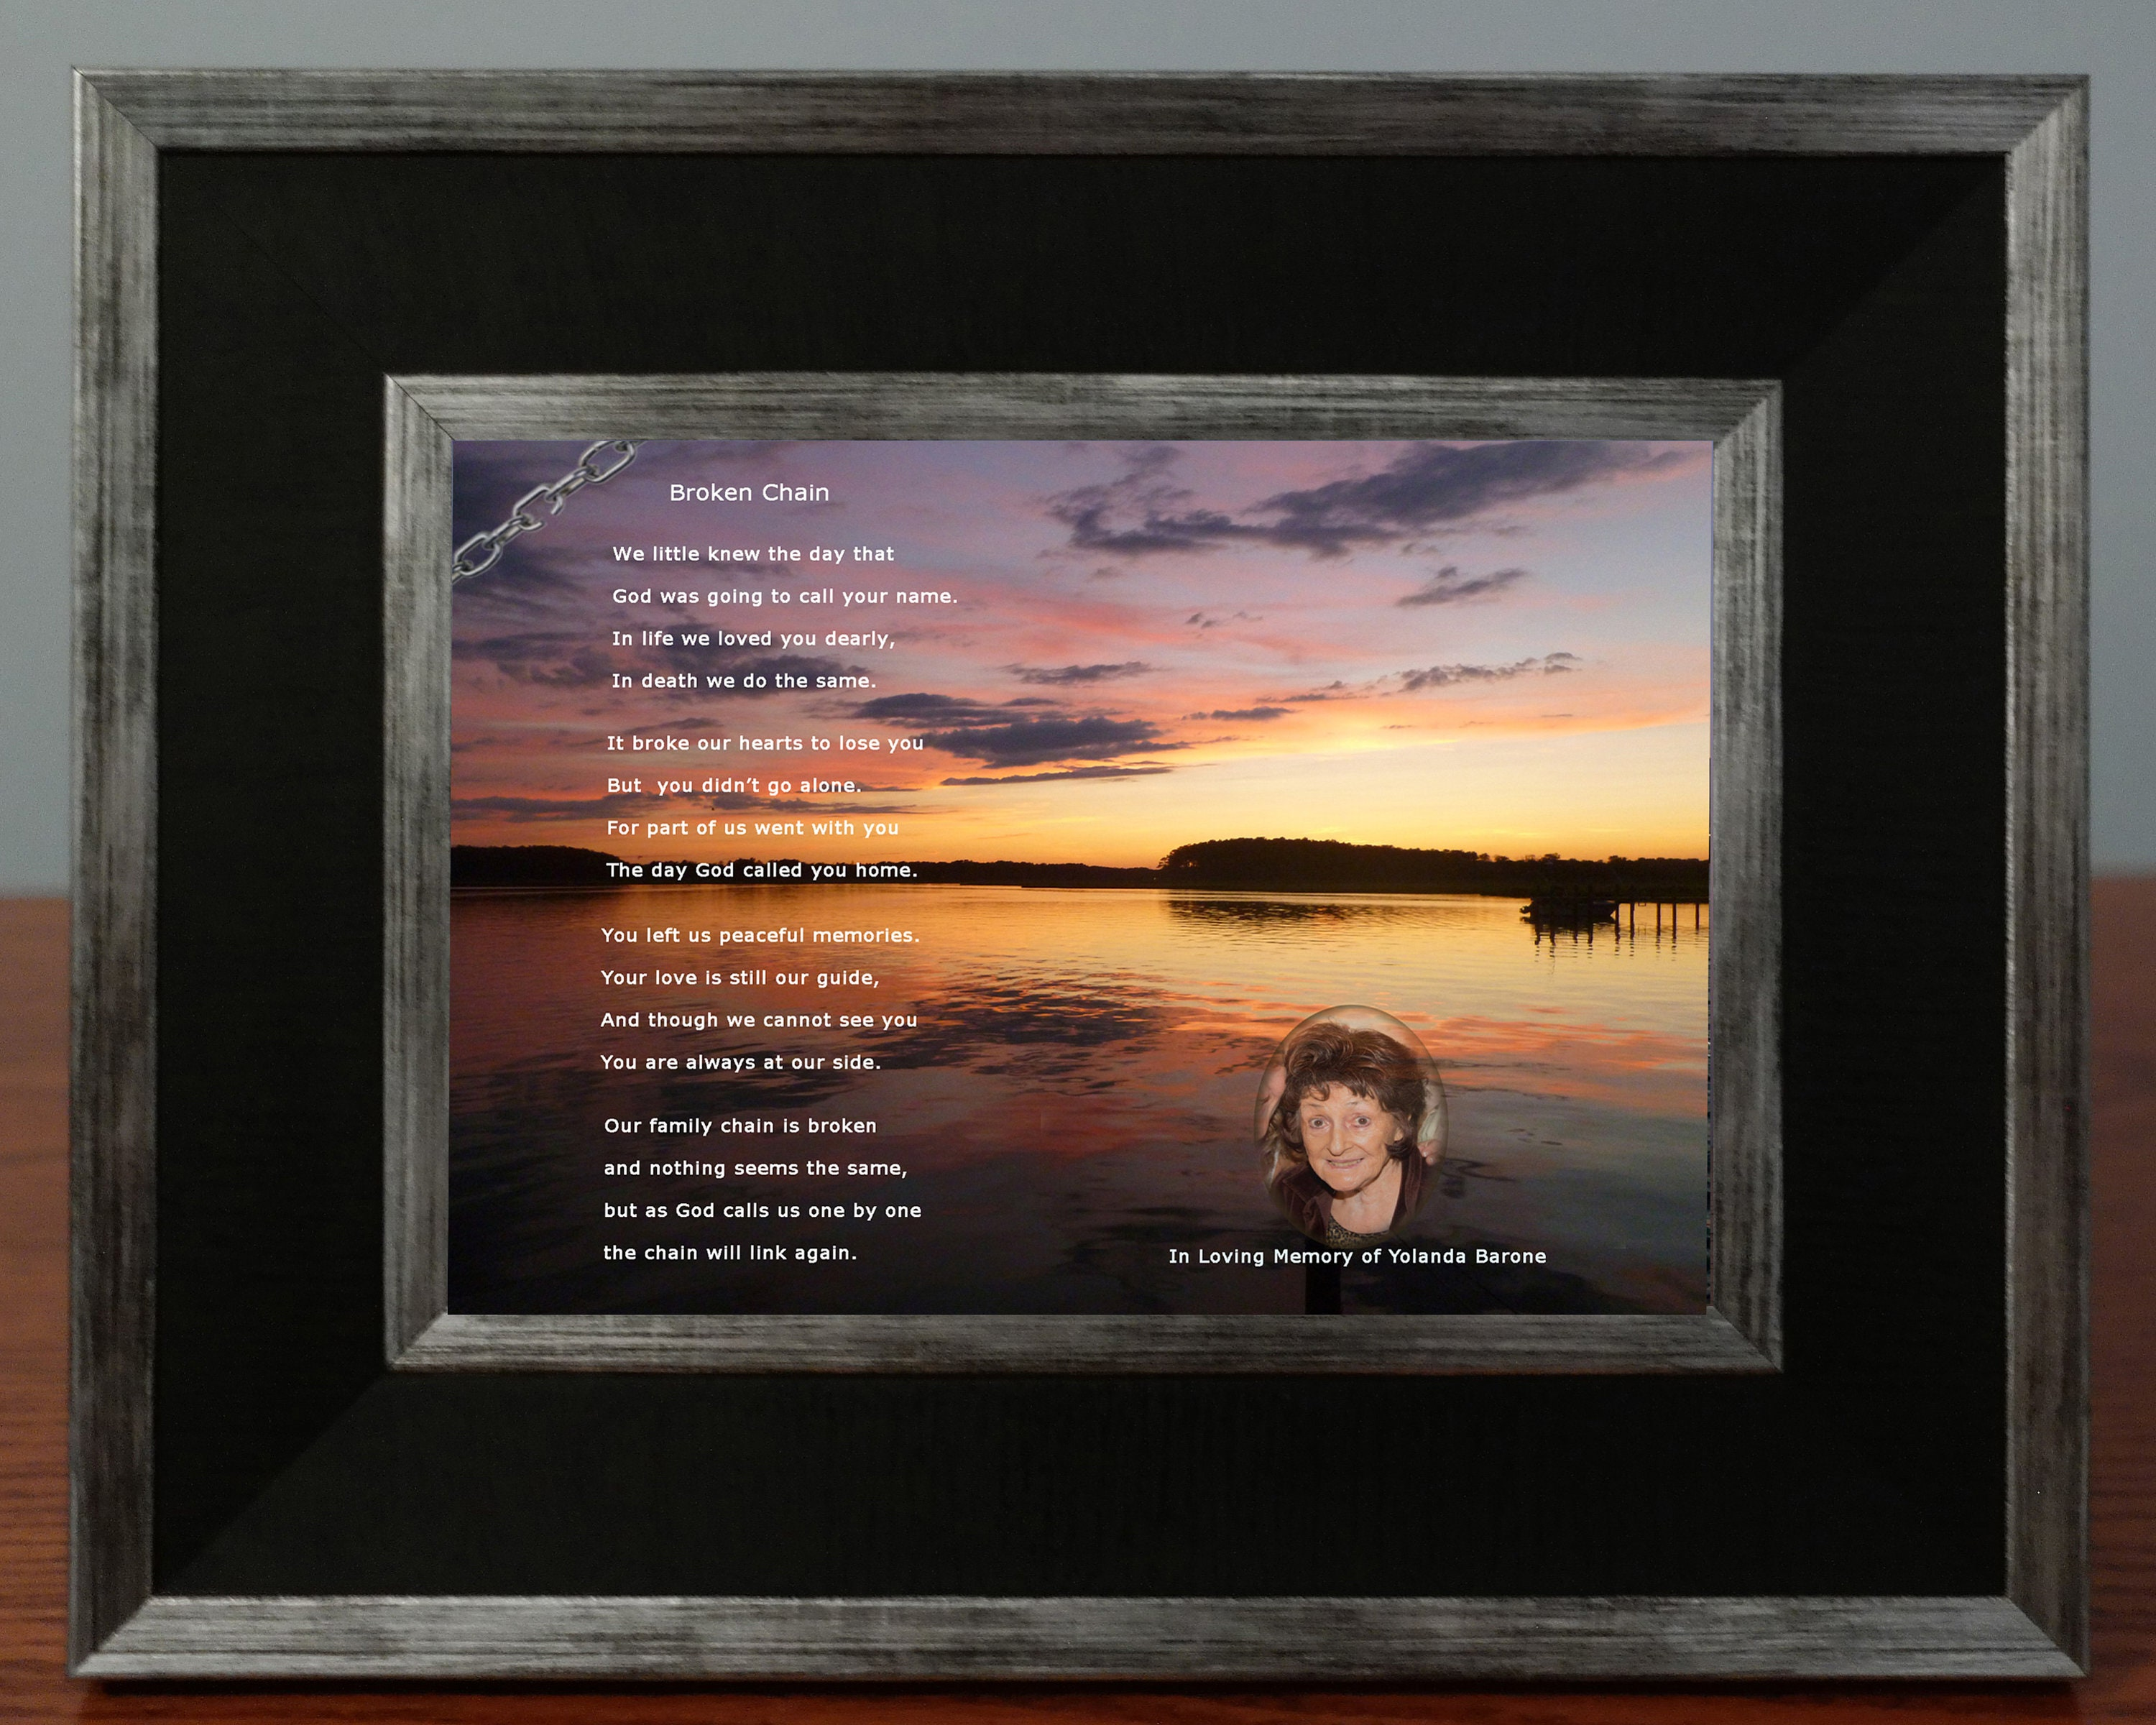 Customized Broken Chain Sympathy Poem With Photo Of Loved One